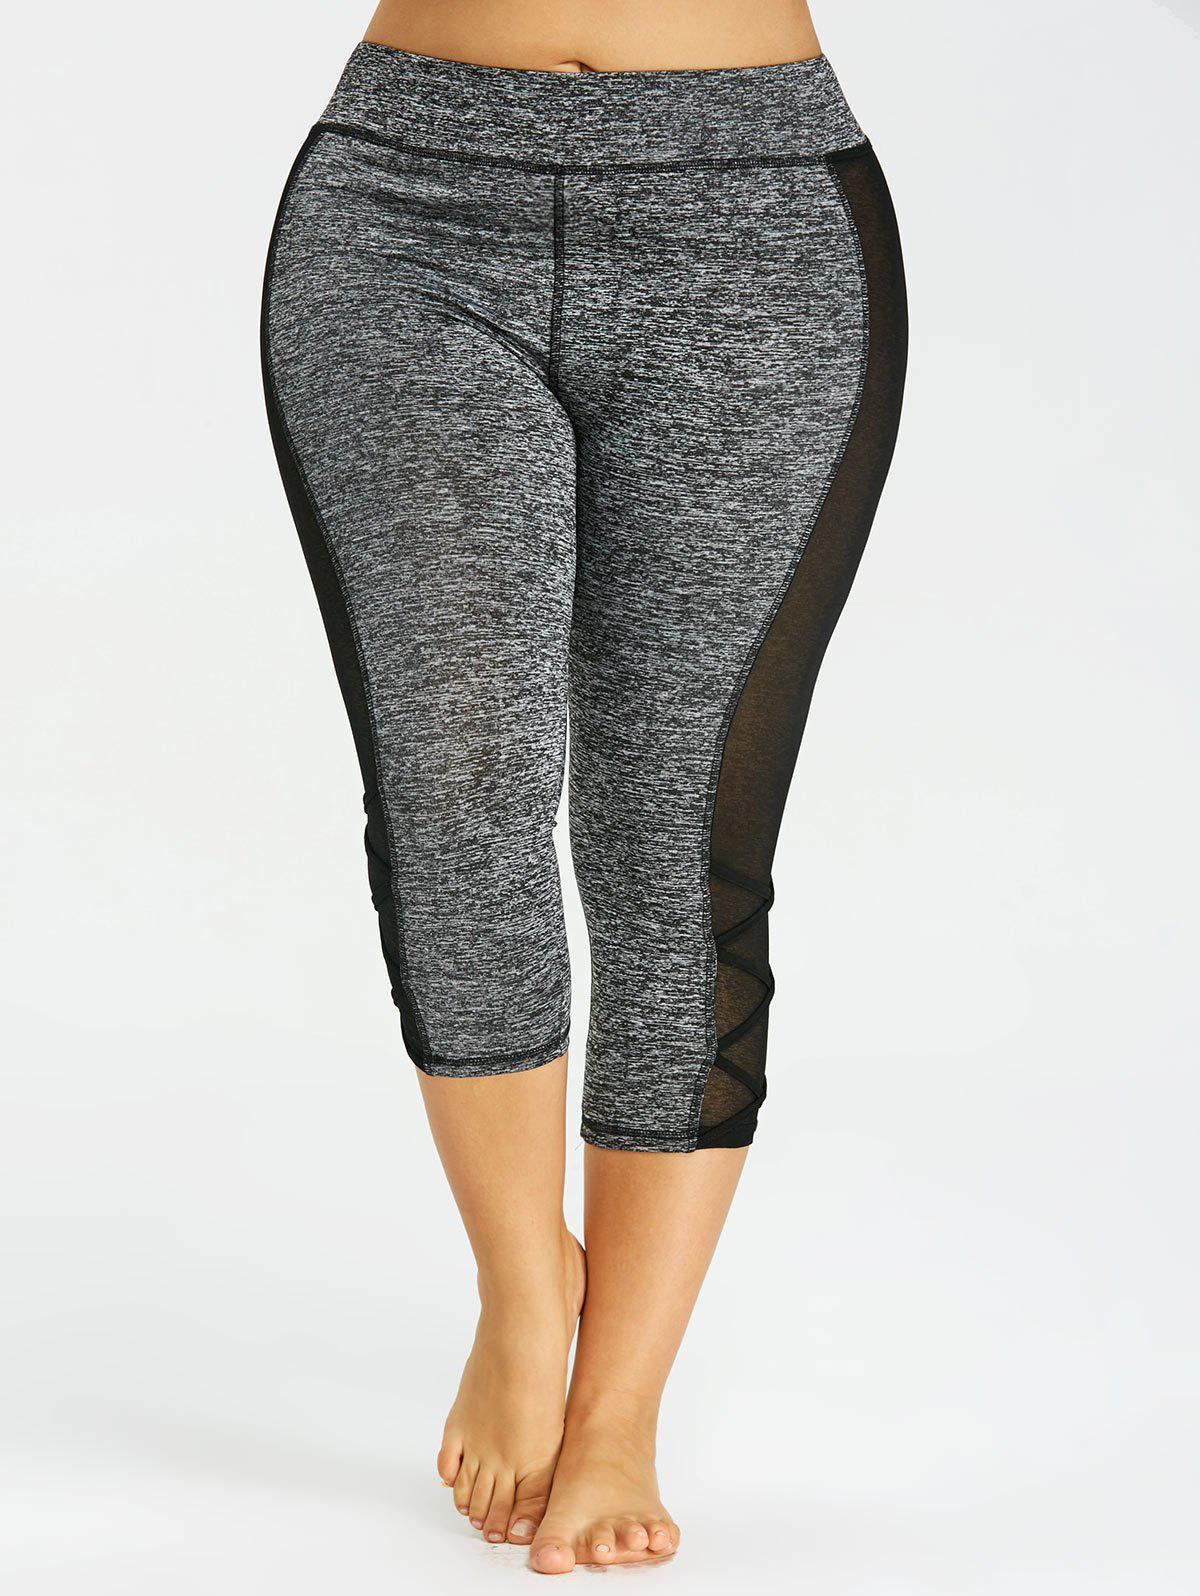 Plus Size Marled Capri Leggings - DARK HEATHER GRAY XL